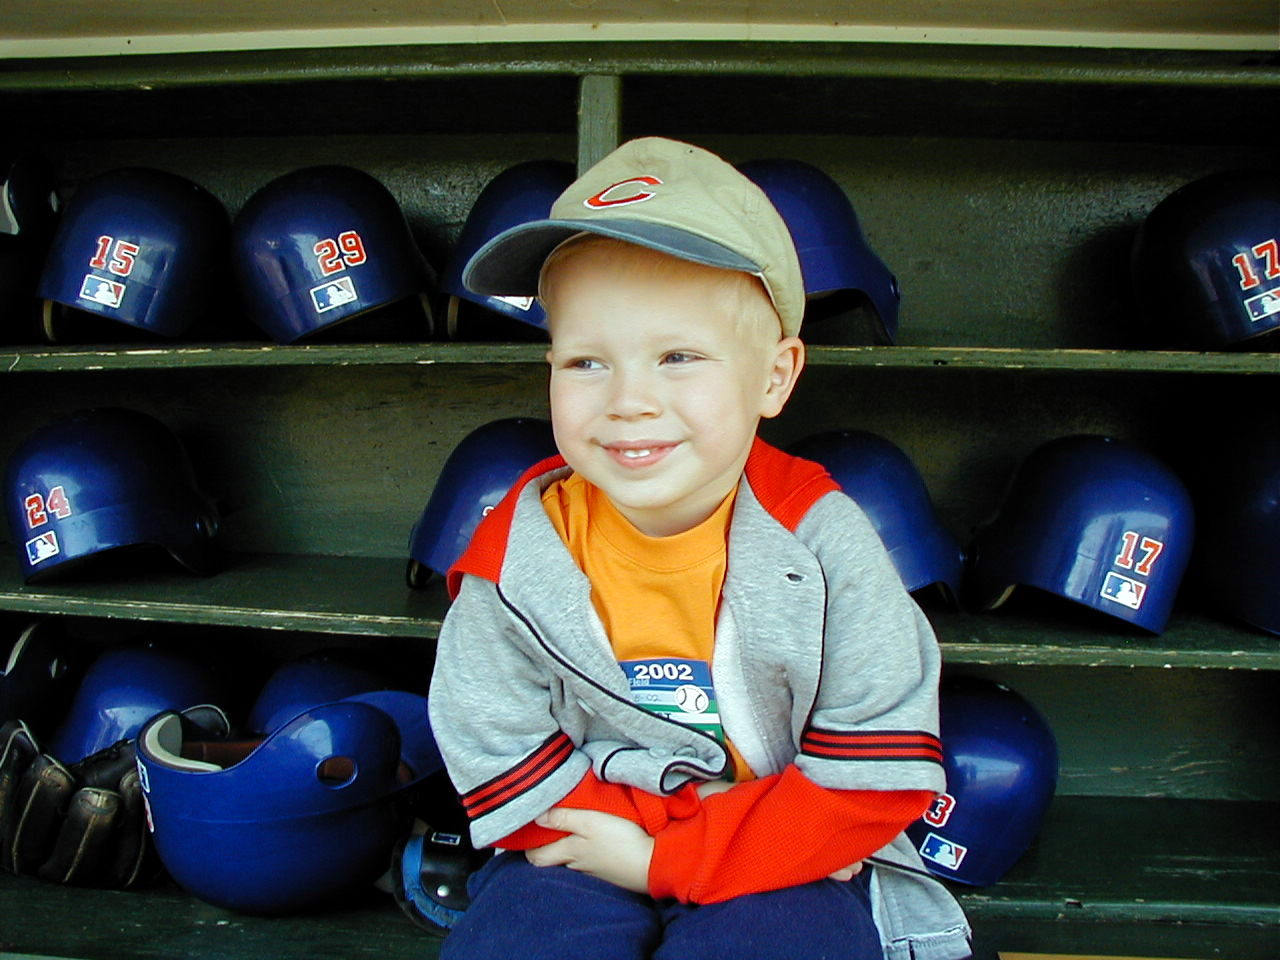 Cheryl Raye Stout's son, Jaxon, in the Cubs dugout in 2002. (Photo by Glenn Stout)